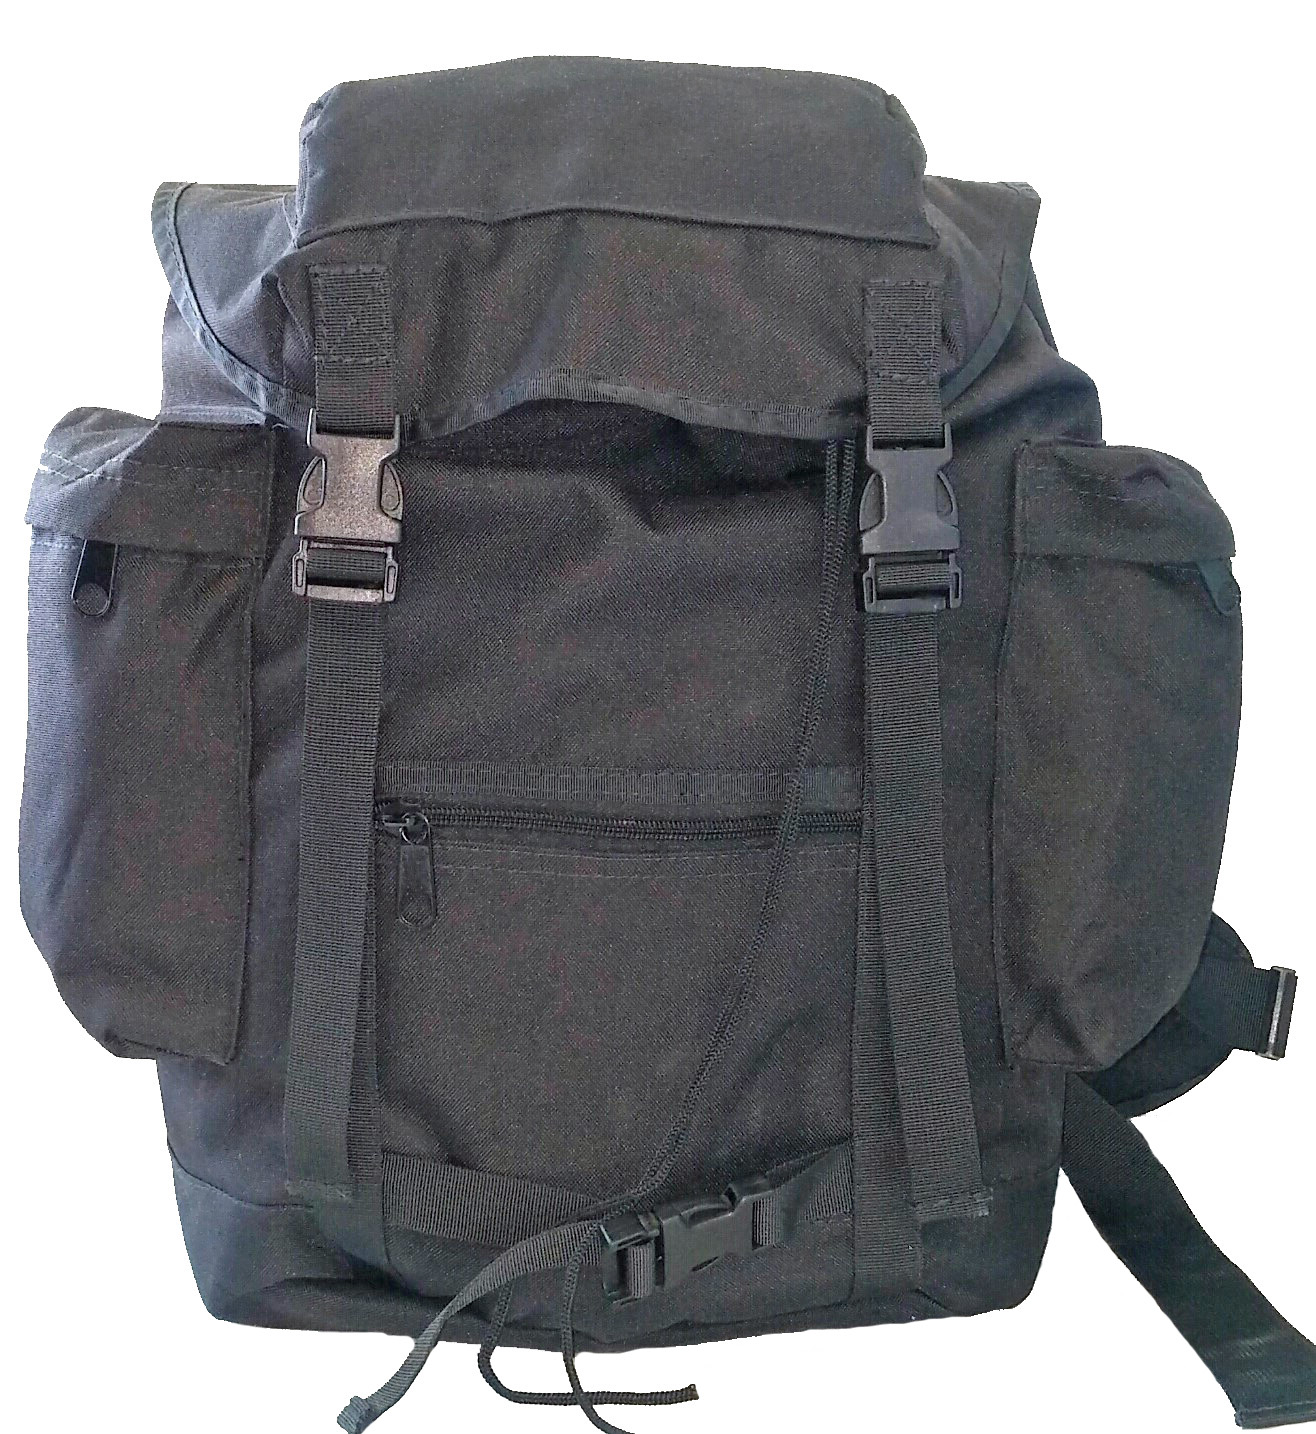 SGS Black 3 day backpack